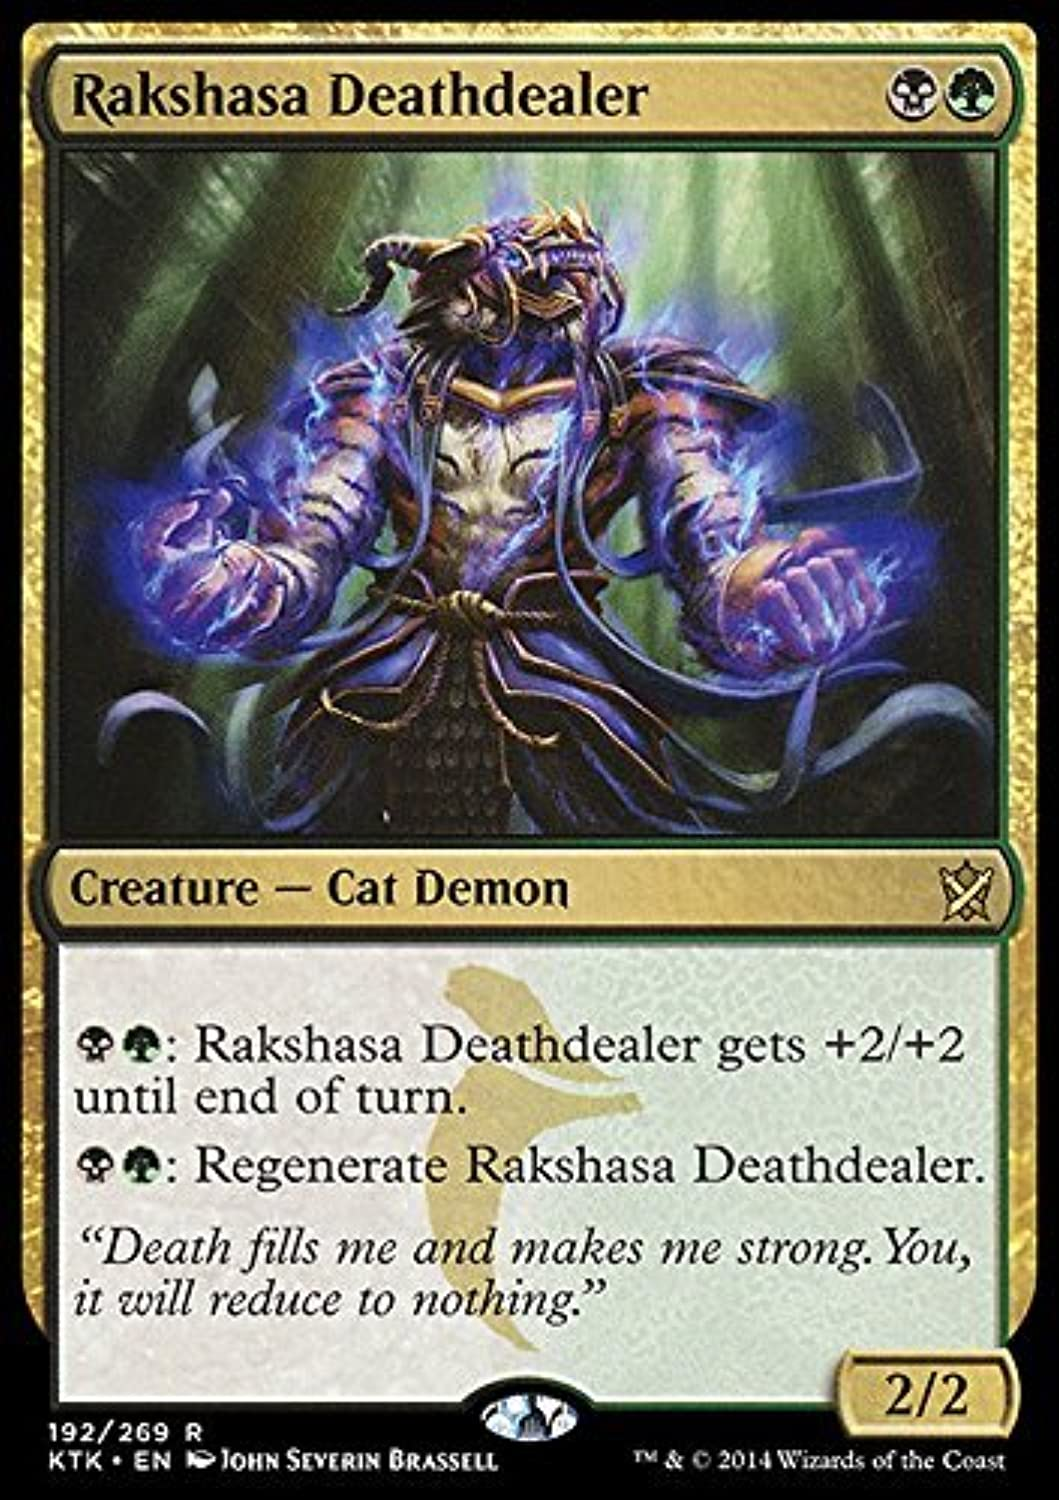 Magic  the Gathering  Rakshasa Deathdealer (192 269)  Khans of Tarkir